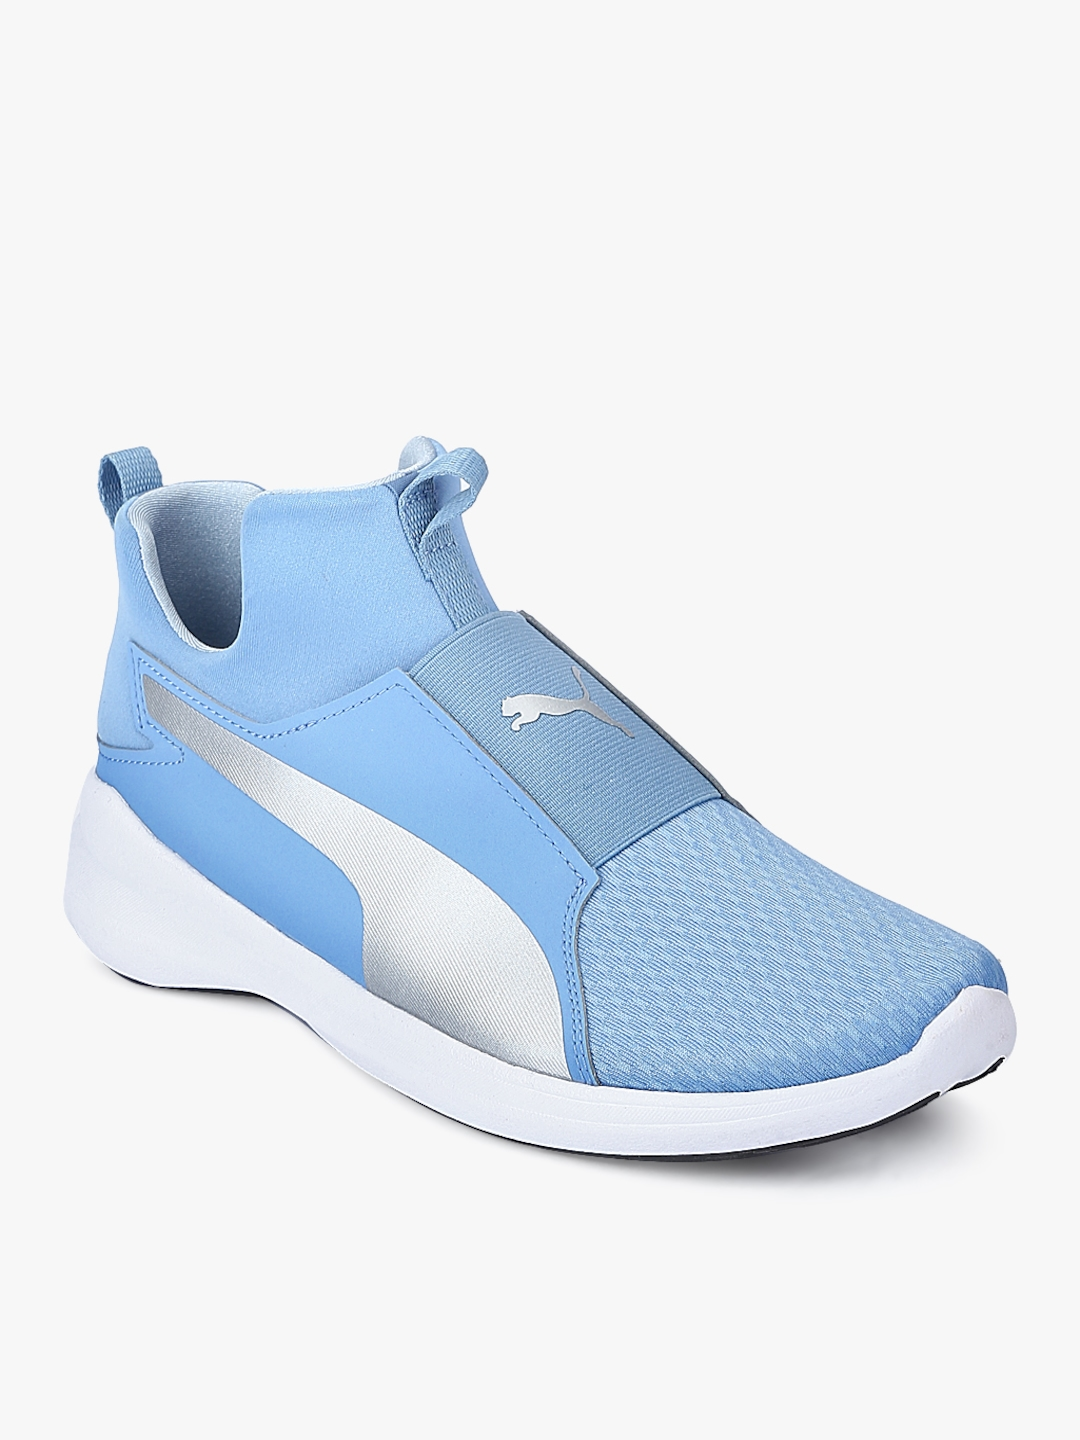 240670b91c2e Buy Puma Rebel Mid Blue Sneakers - Casual Shoes for Women 7633638 ...